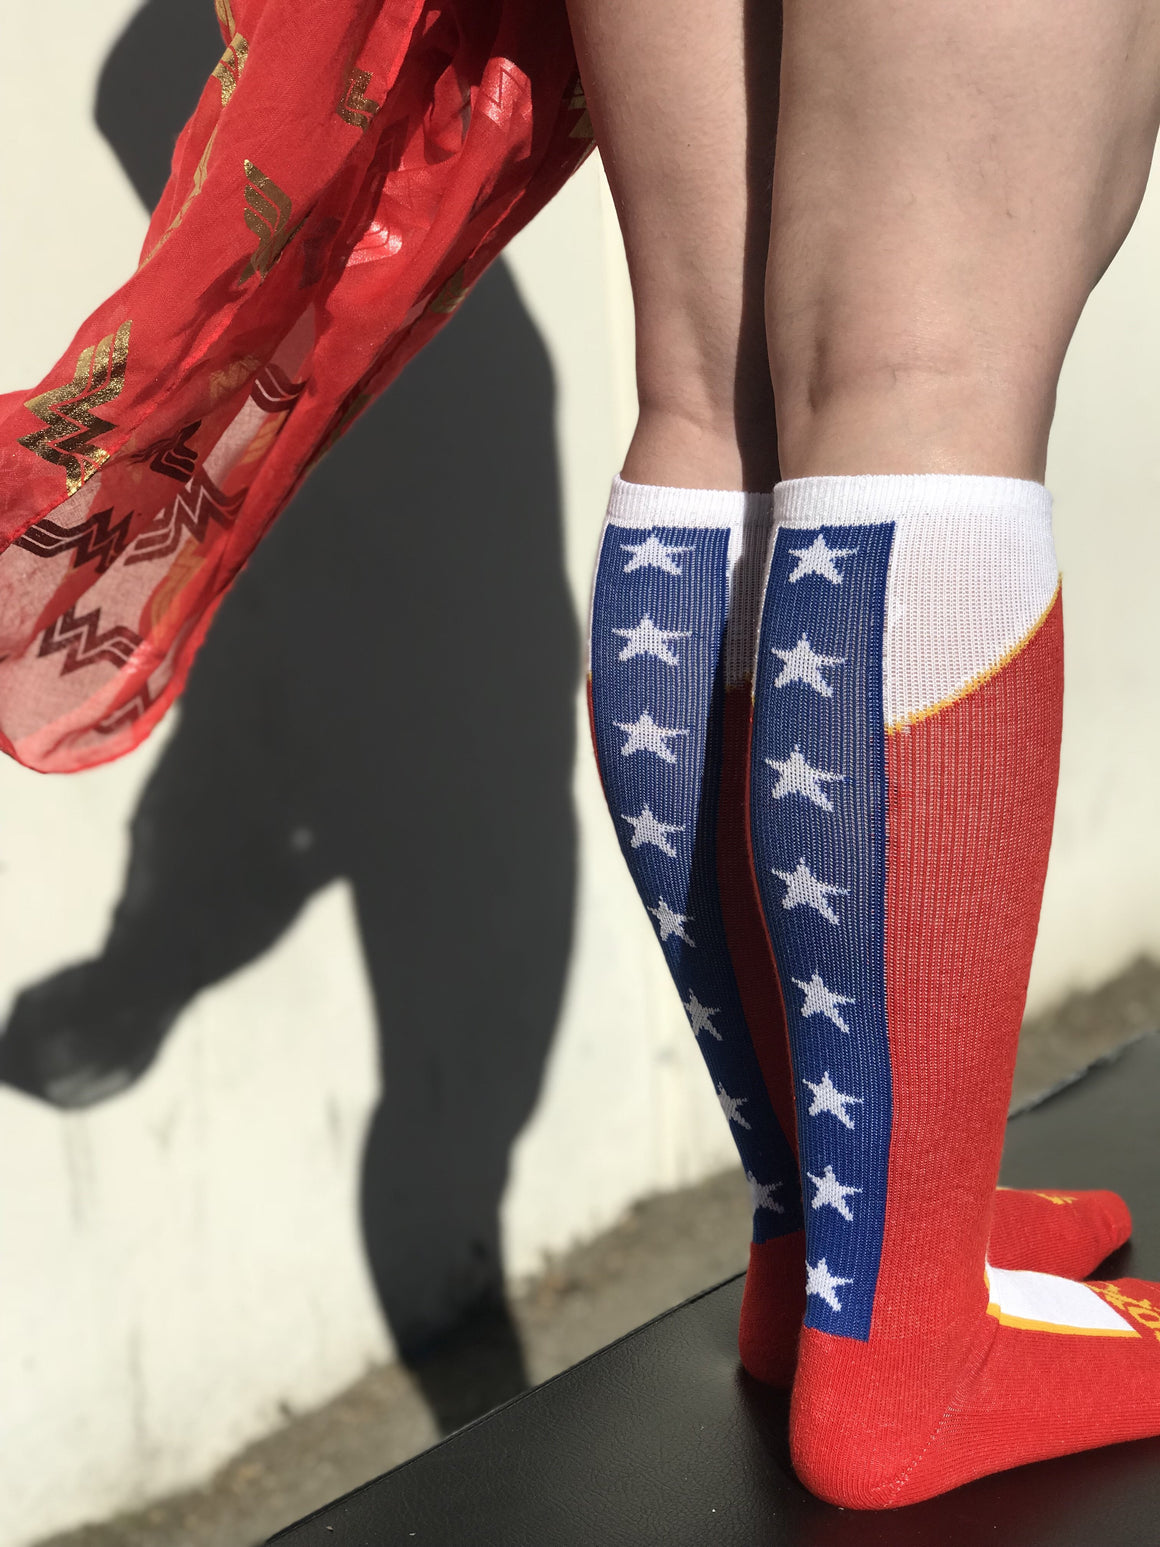 American Woman Red Boot Knee High Athletic Socks -The Sox Box